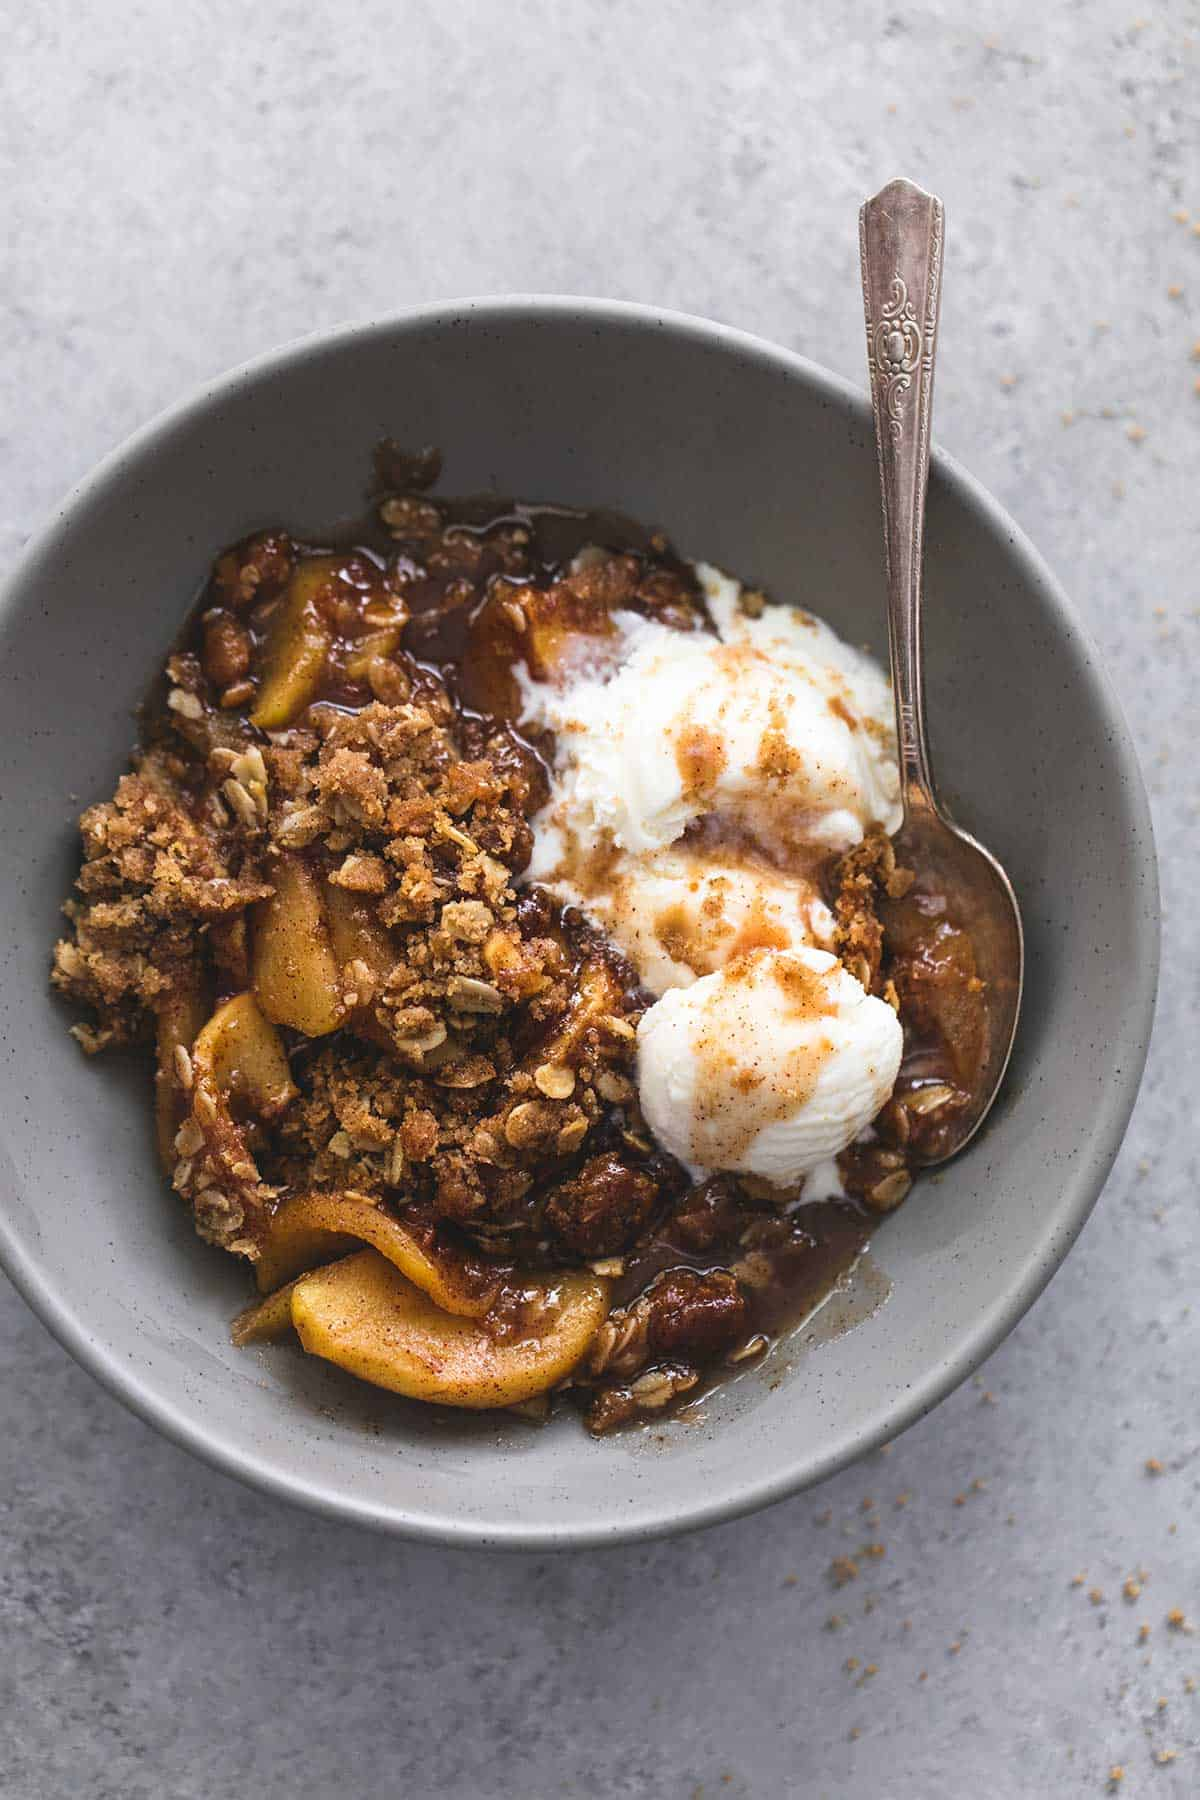 Topping and just a touch of sea salt makes the best easy apple crisp